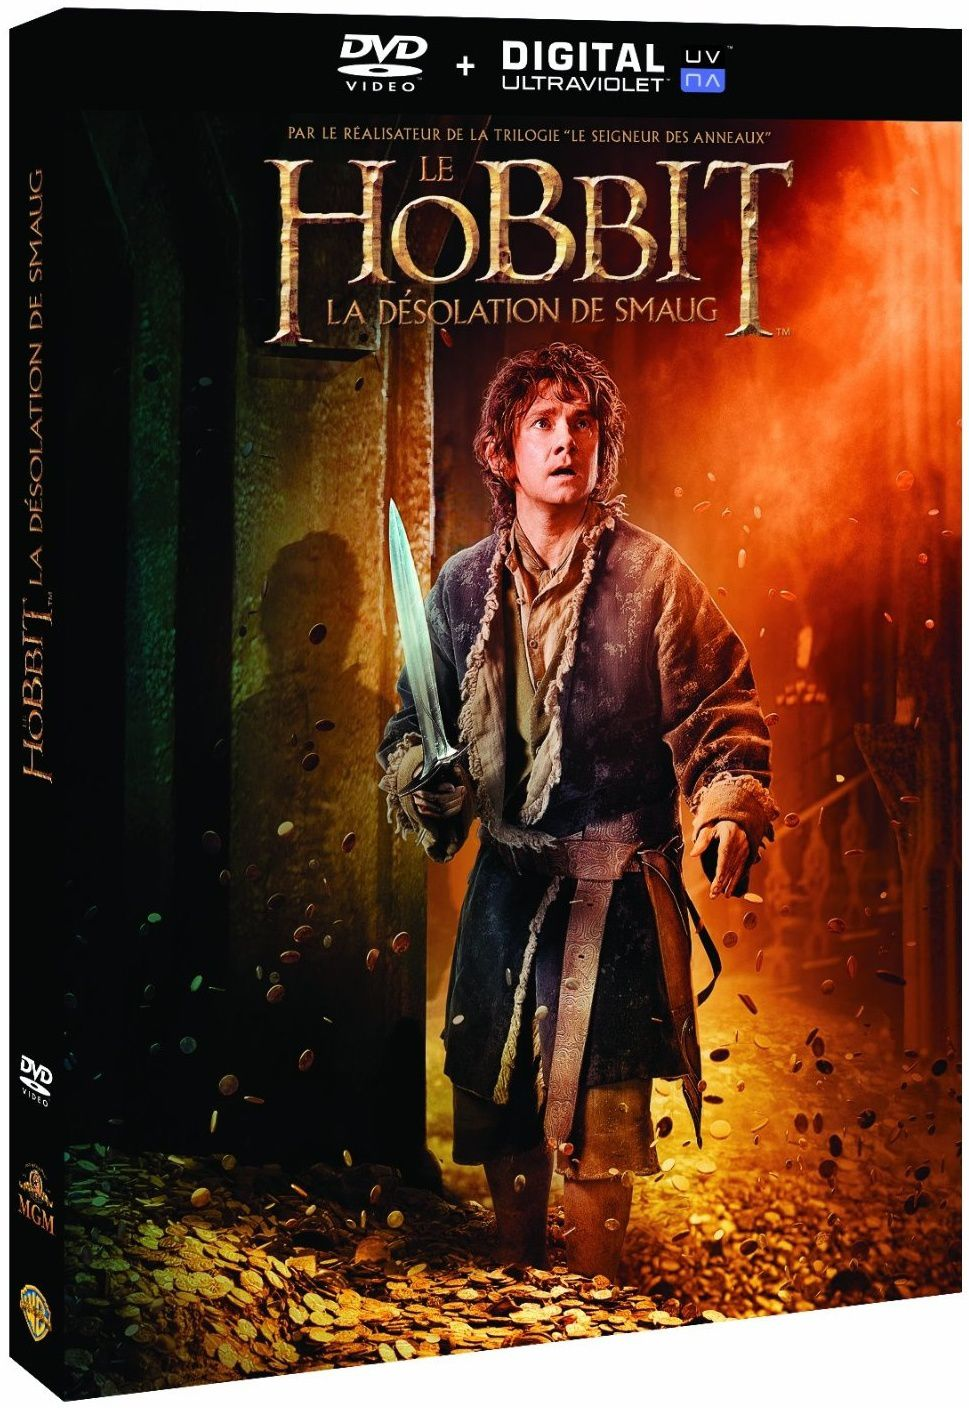 The hobbit movie rapidshare